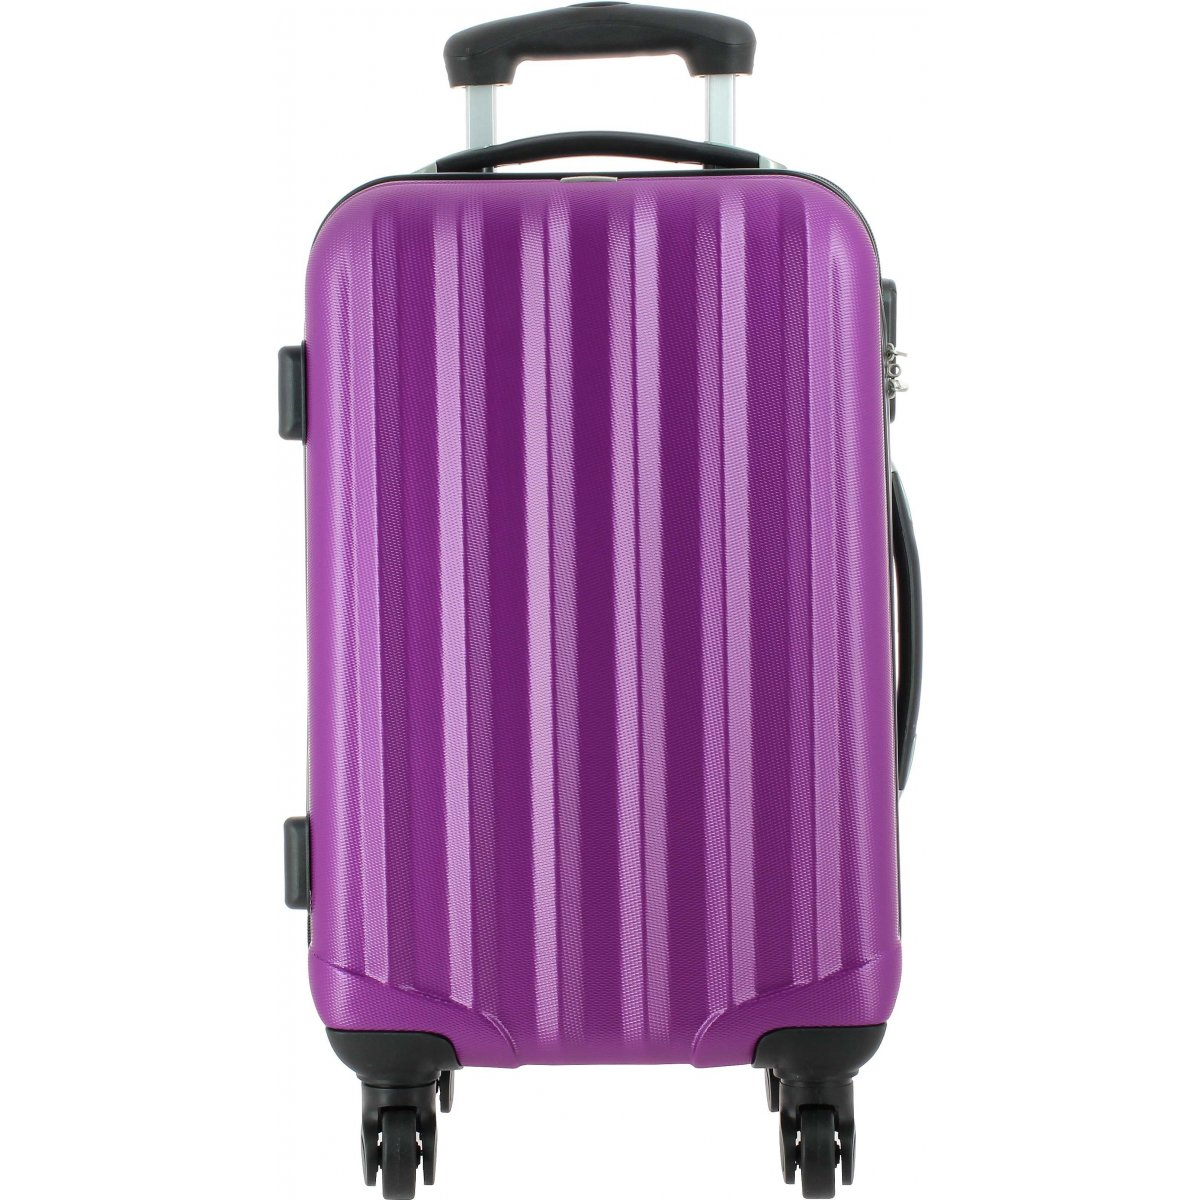 valise cabine david jones ba10111p couleur principale violet promotion. Black Bedroom Furniture Sets. Home Design Ideas